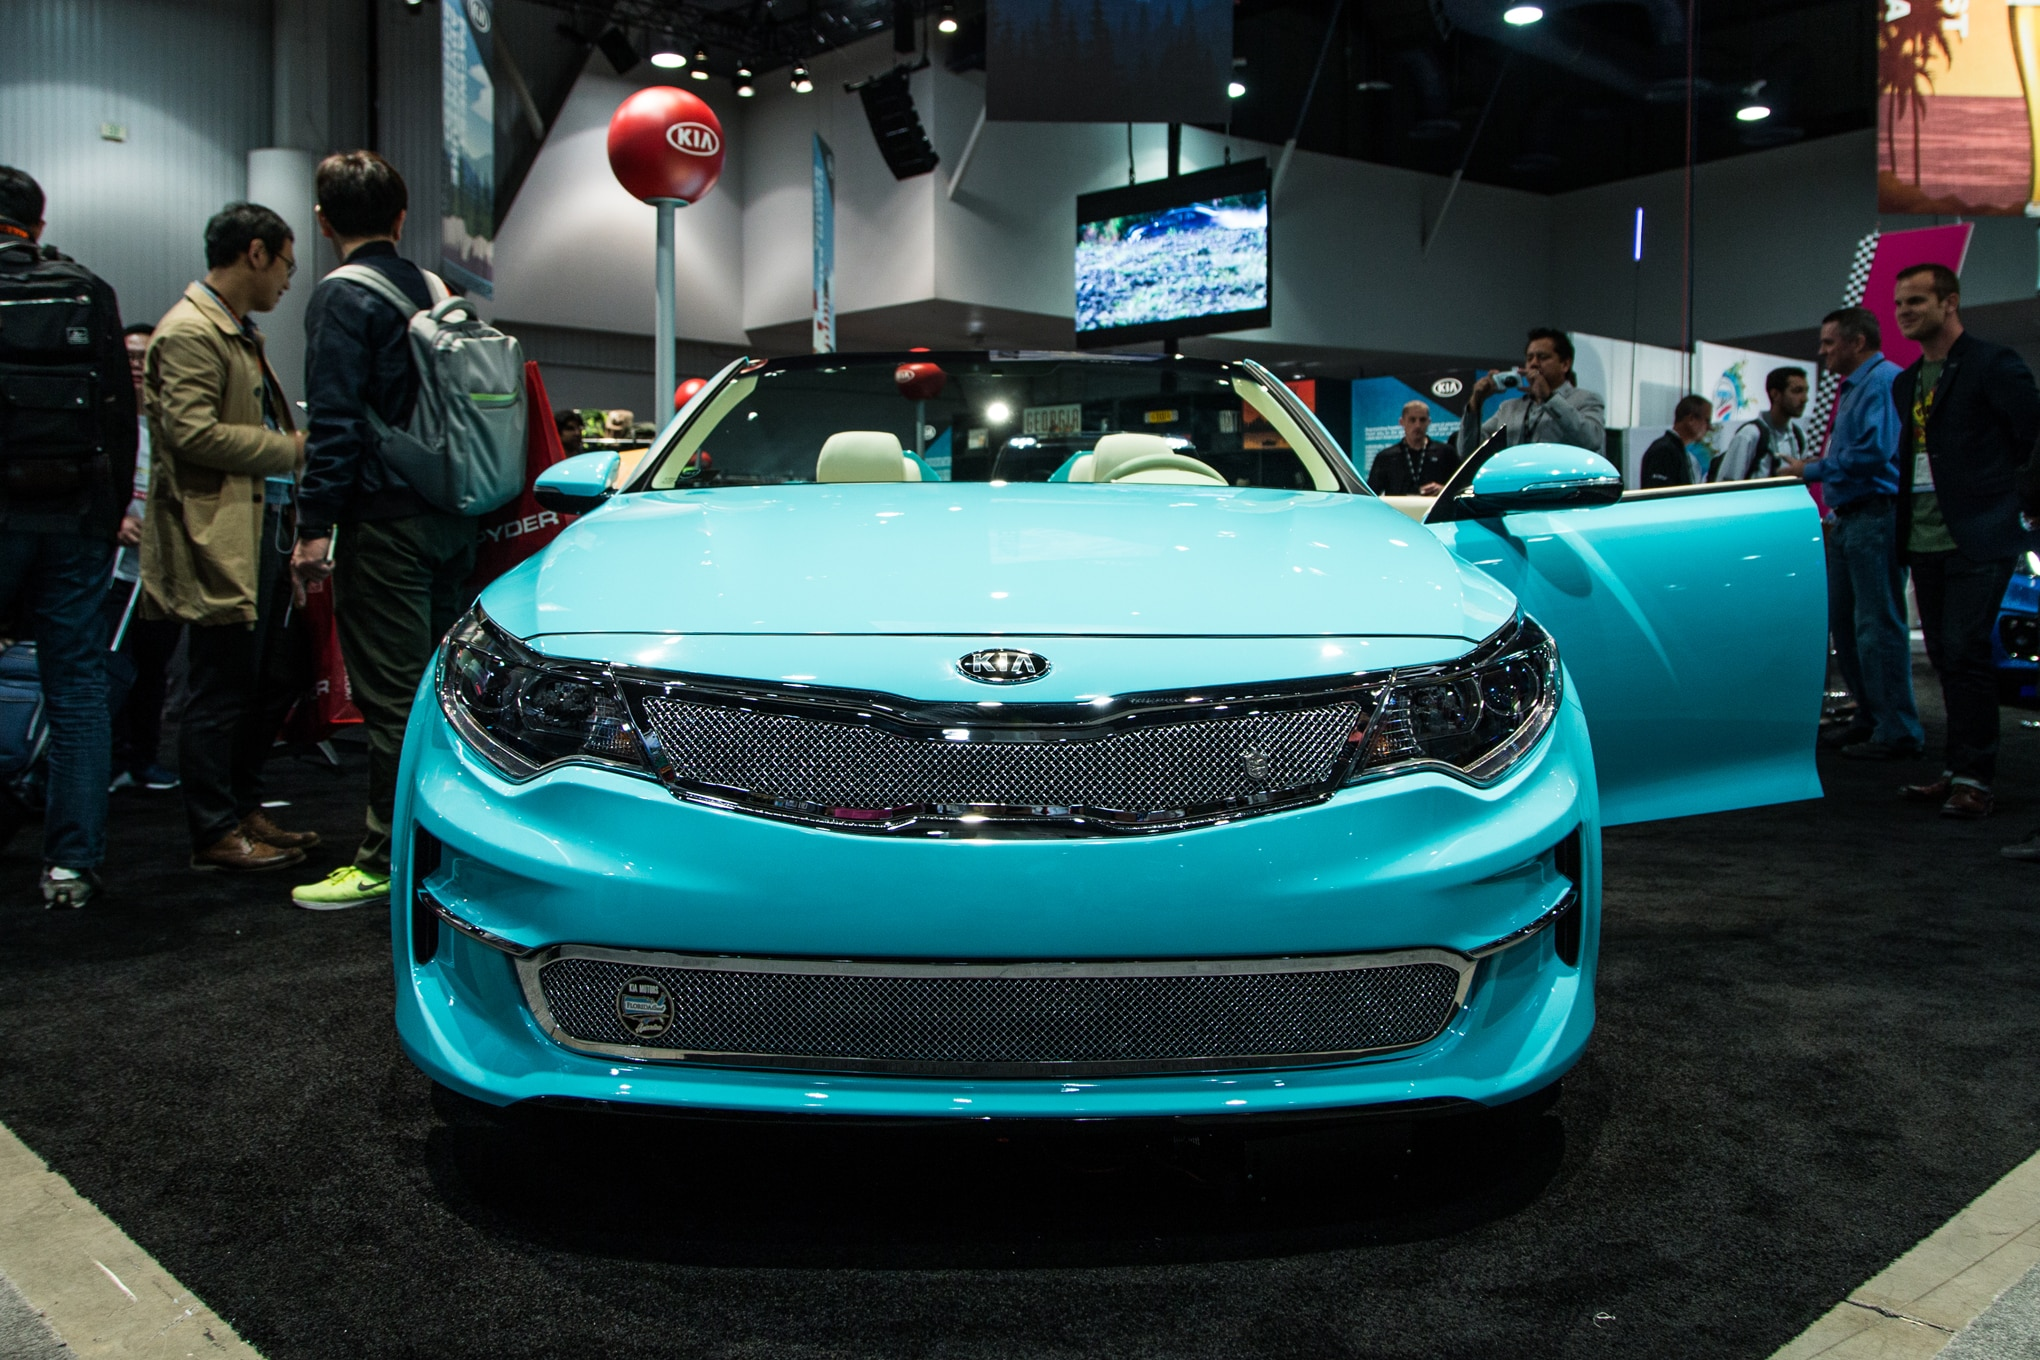 will formacar show of charged en worldwide tease wcc as tuning stinger gt sema corporation liftback part kia automaker news motors vegas view south the in korean las